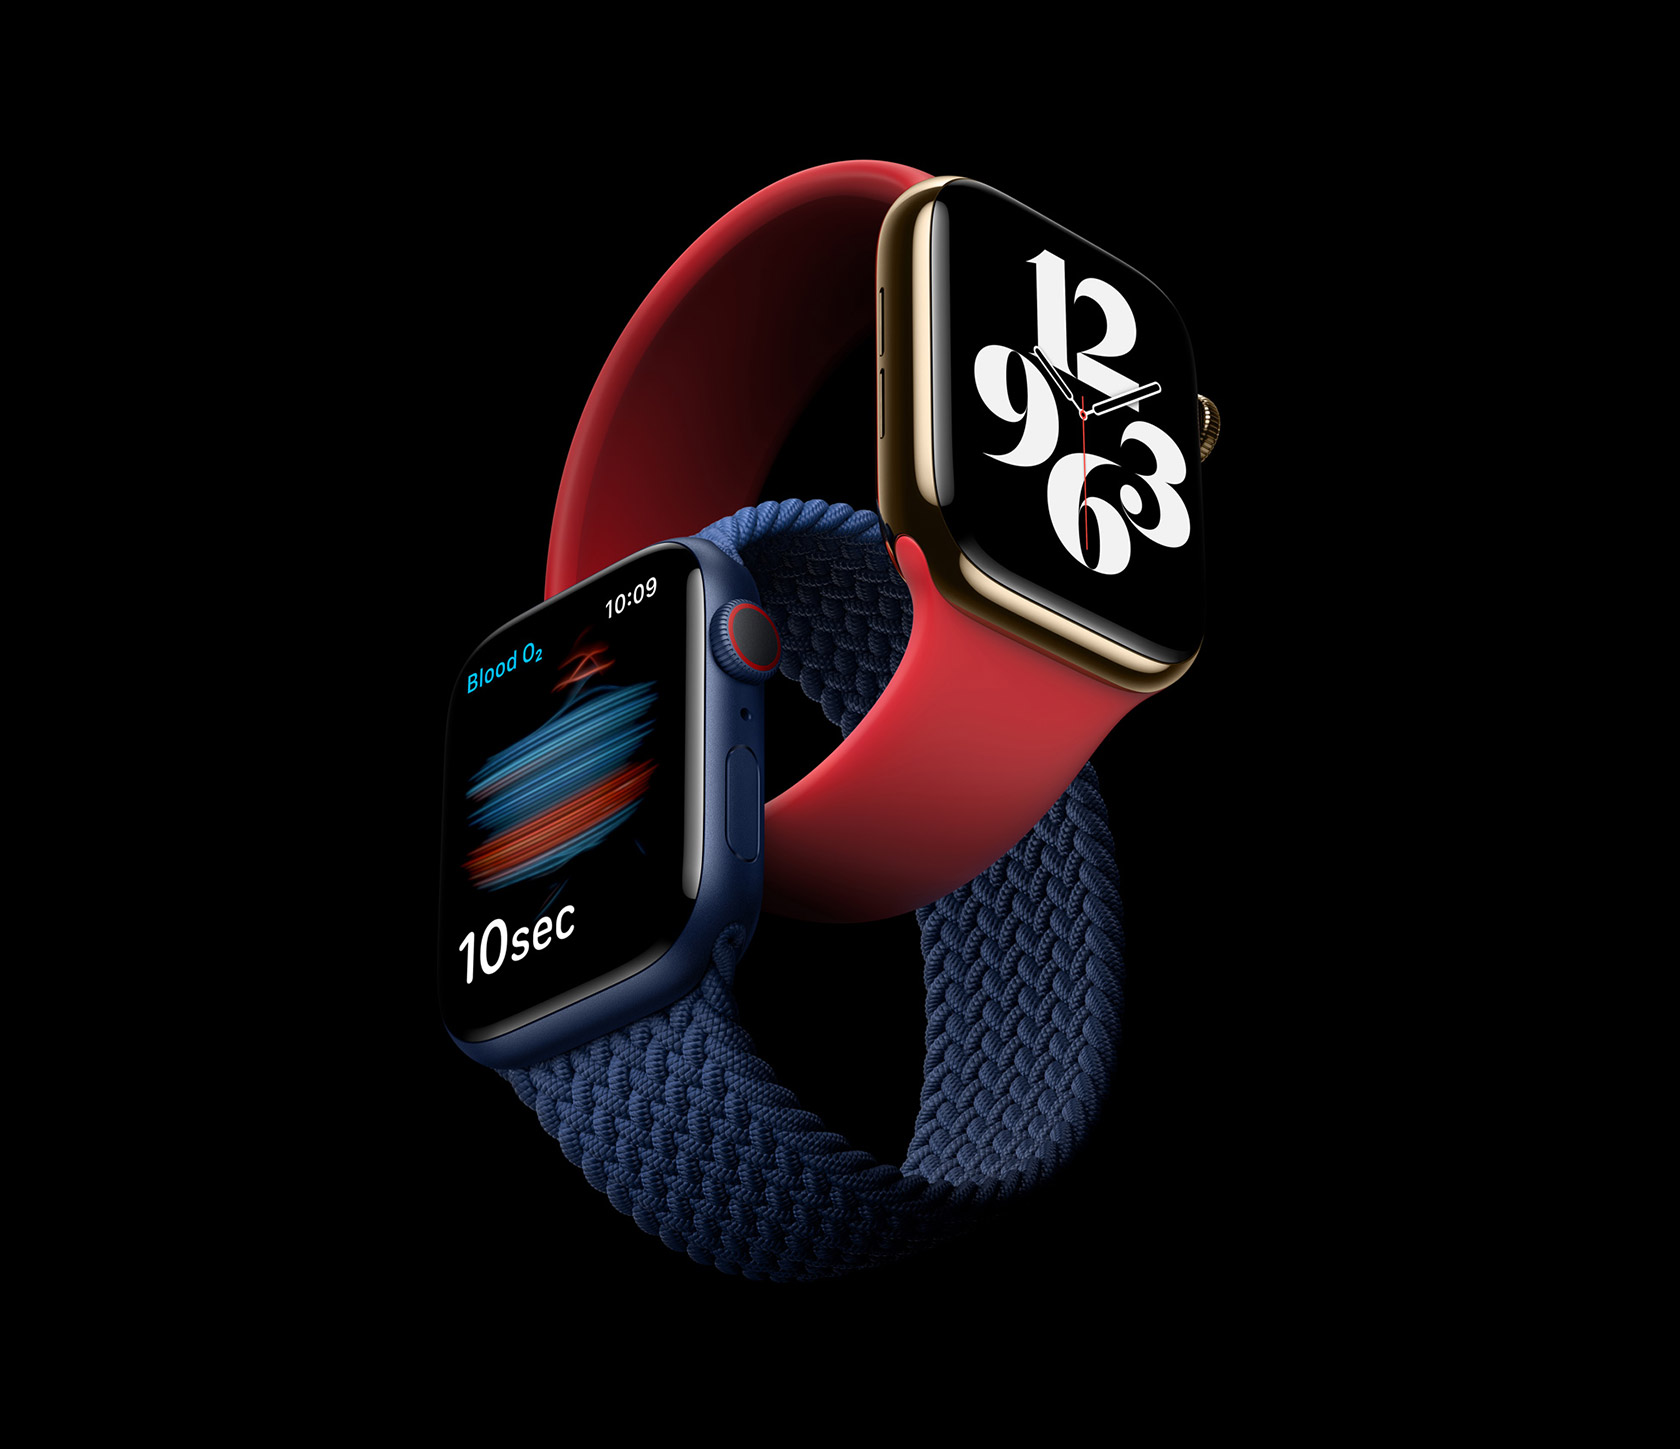 Apple Watch Series 6 Release Price